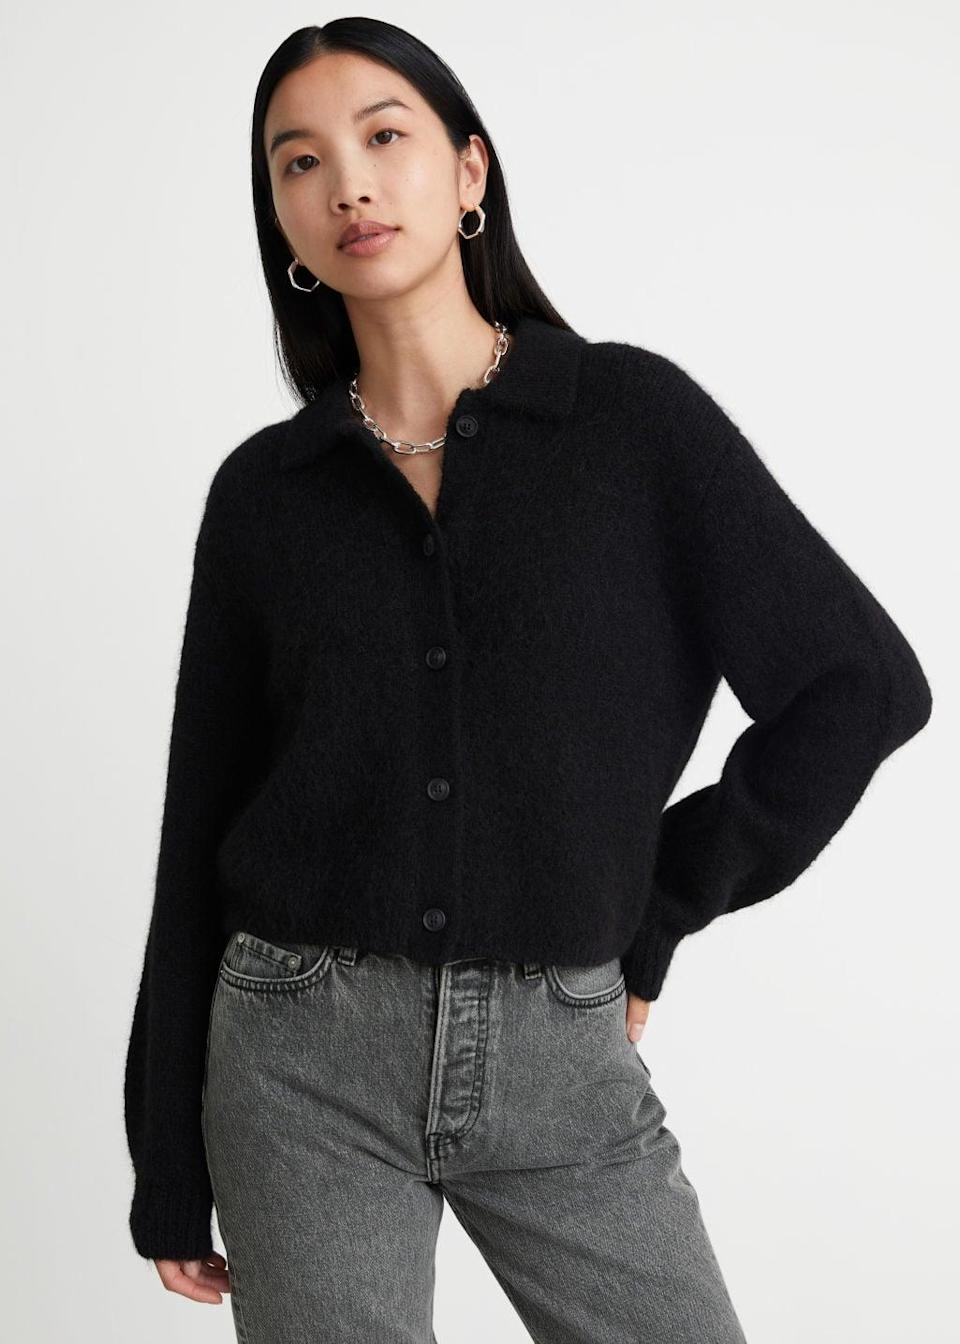 <p>This <span>&amp; Other Stories Collared Alpaca Blend Cardigan</span> ($89) comes in a few colors, but we love the black. The alpaca blend is super cozy, so it'll be a fall staple.</p>